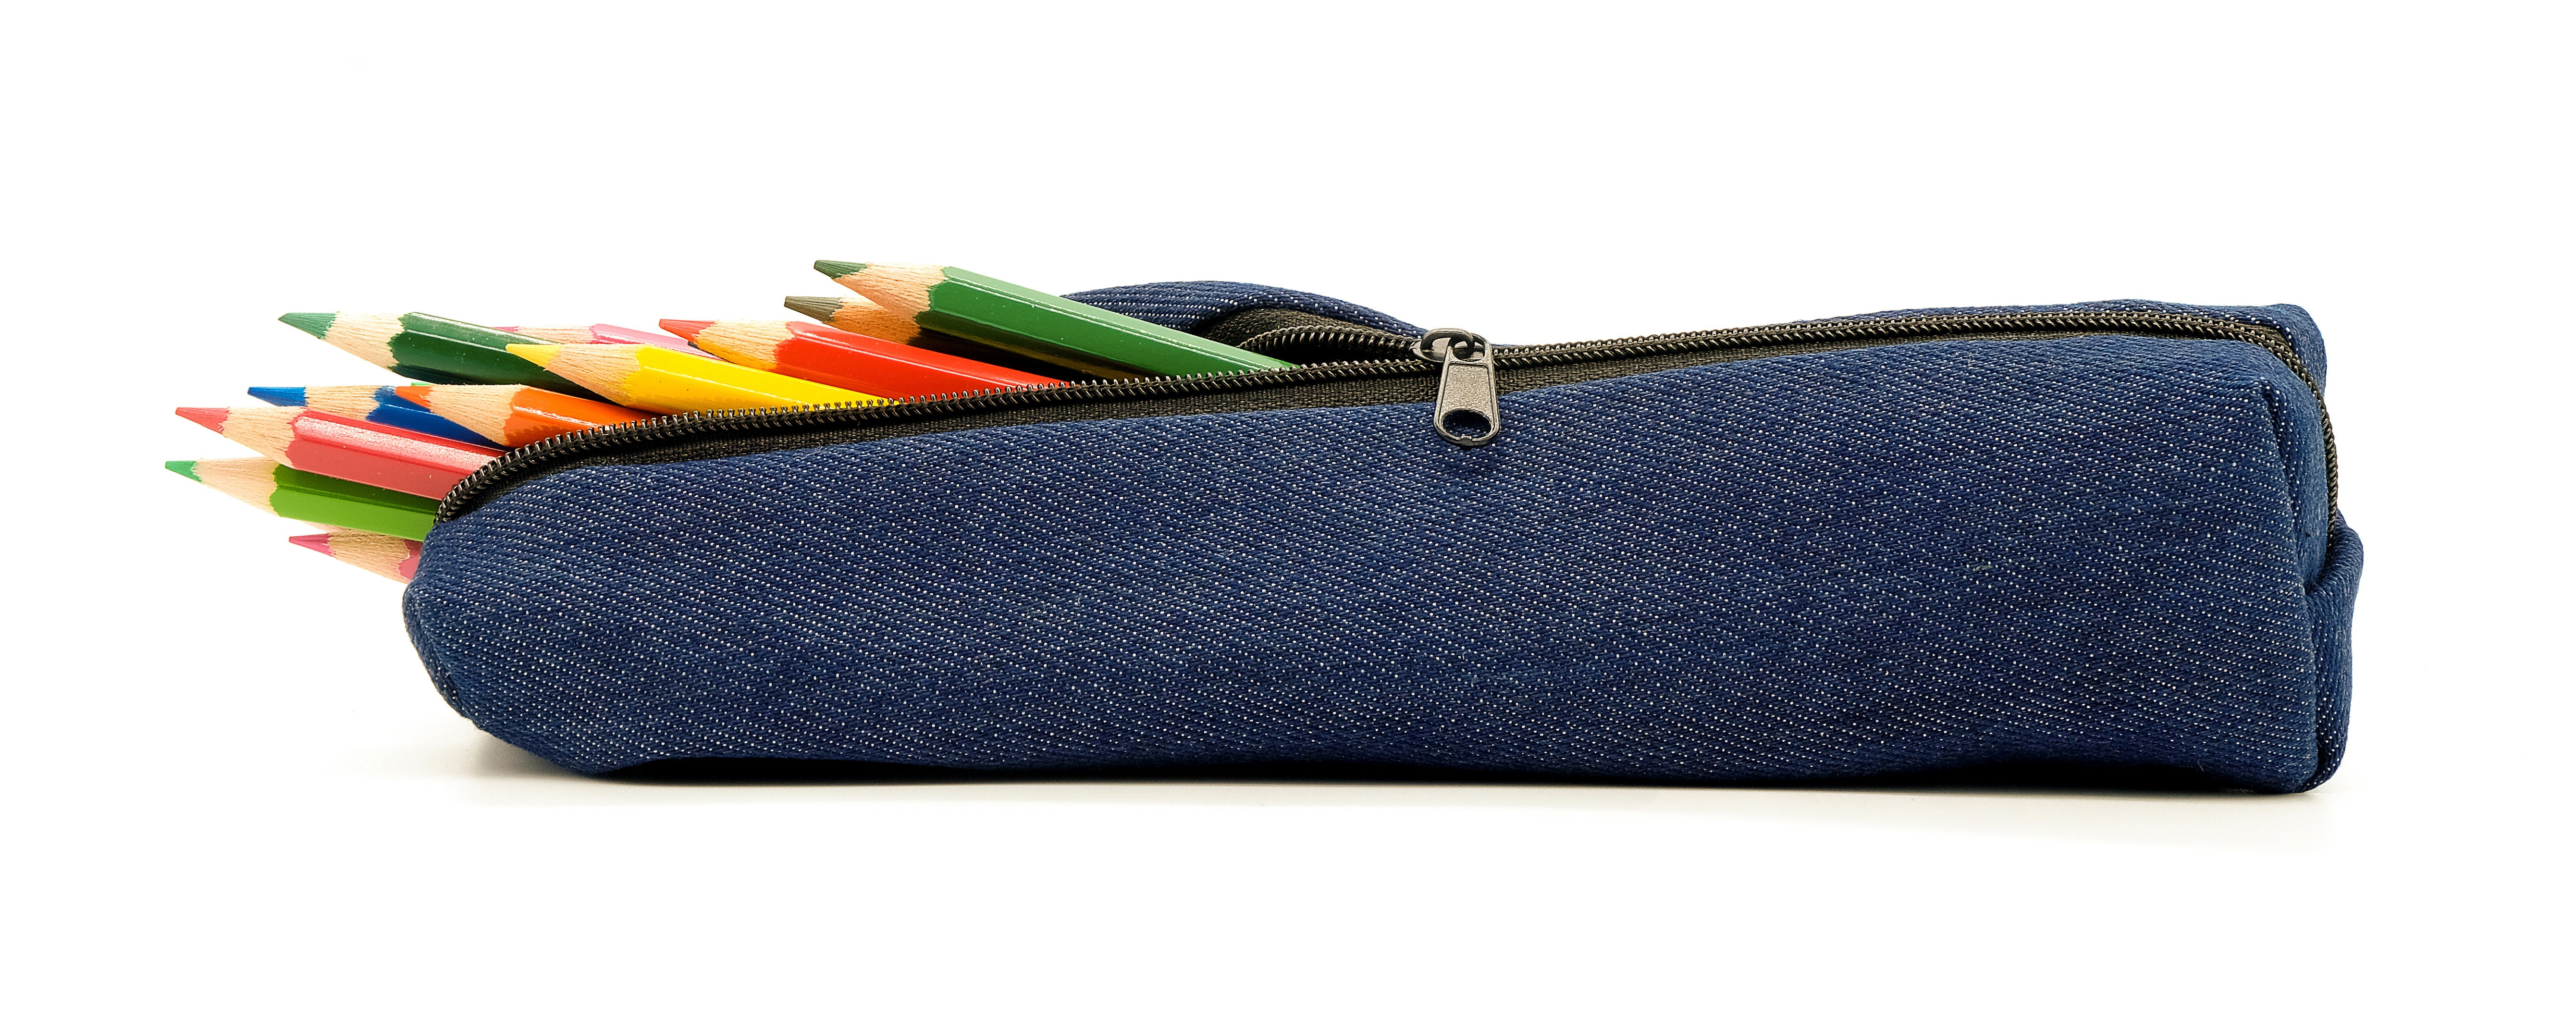 pencil pouch 7 diy projects to get you ready for fall semester jjc joliet junior college